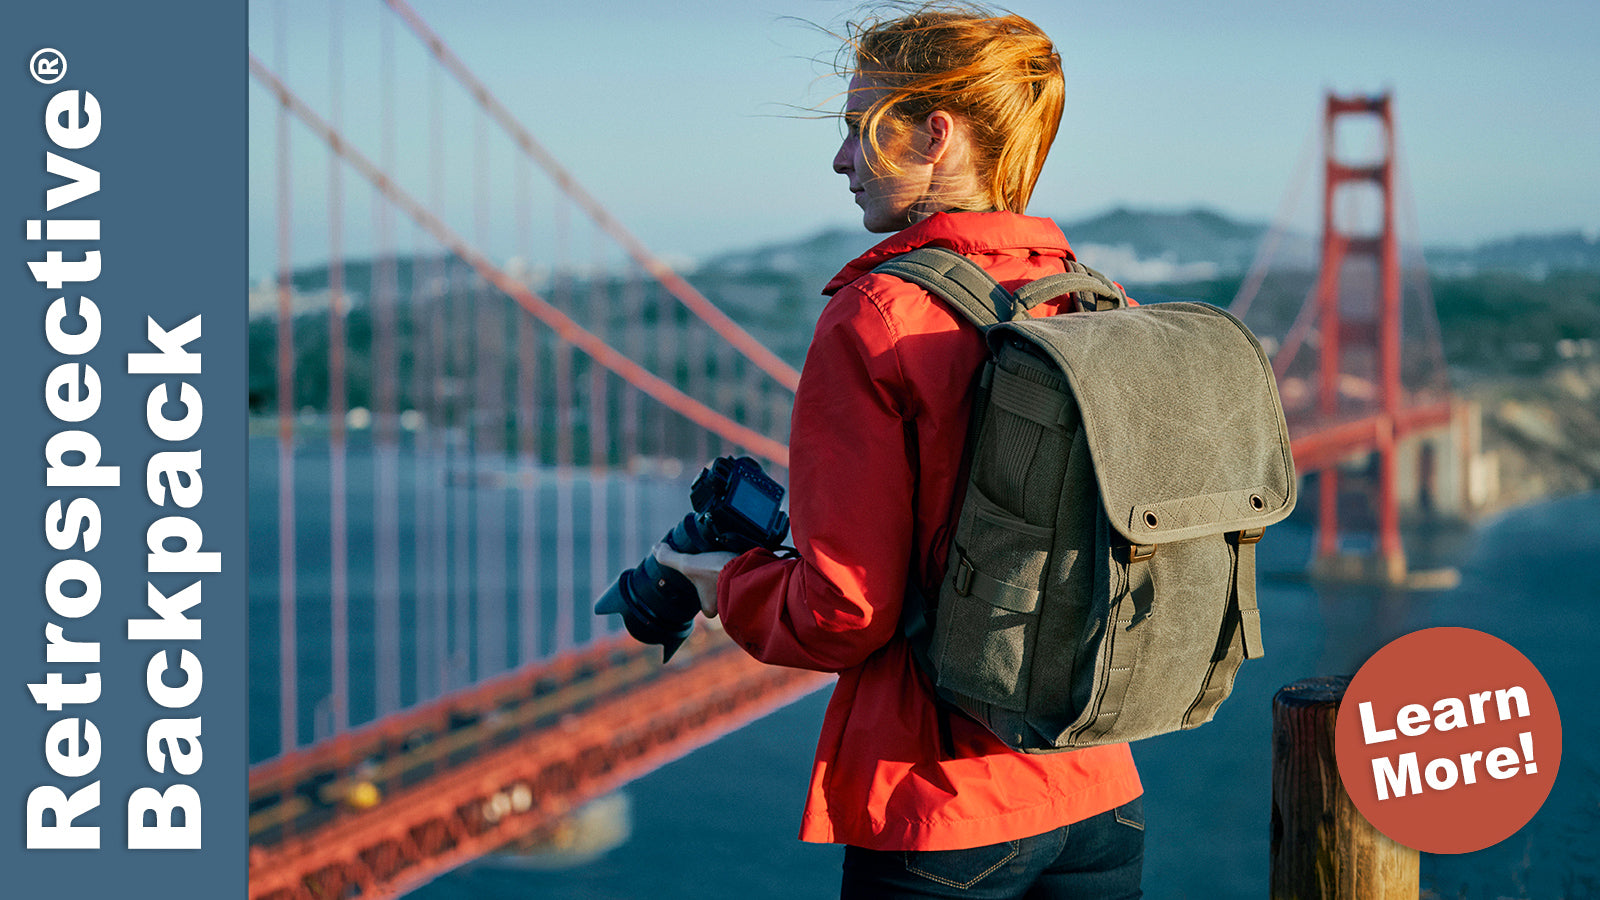 Whether bushwhacking through the outback or horse packin' in the Wild West, the Retrospective Backpack 15 is built for back-road adventure travel.